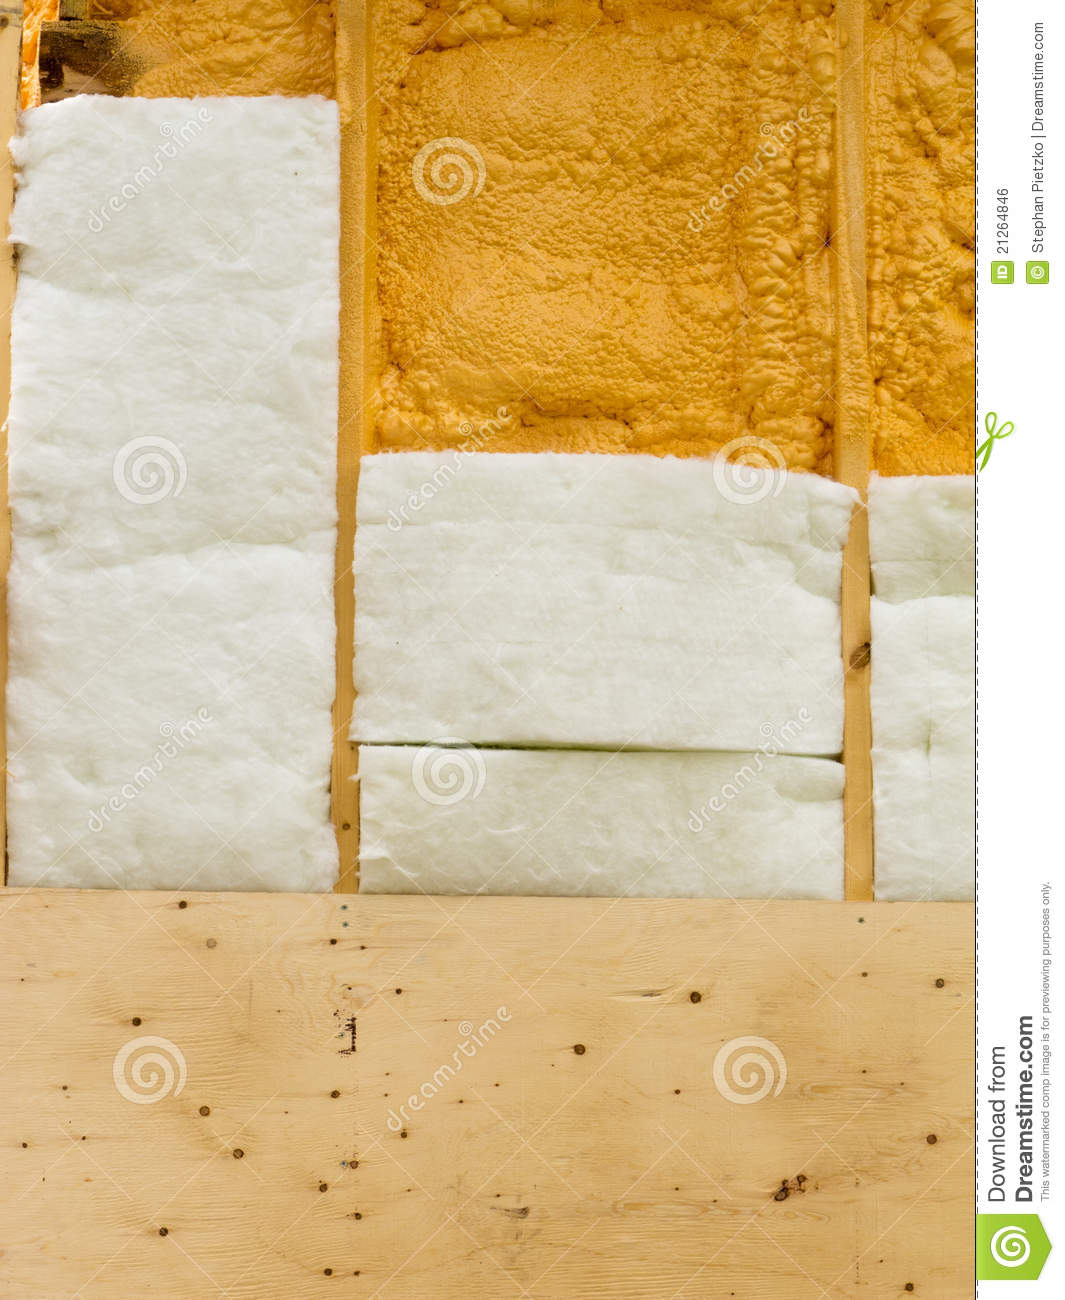 Different Types Of Wall Insulation : Wall insulation to save heating energy royalty free stock